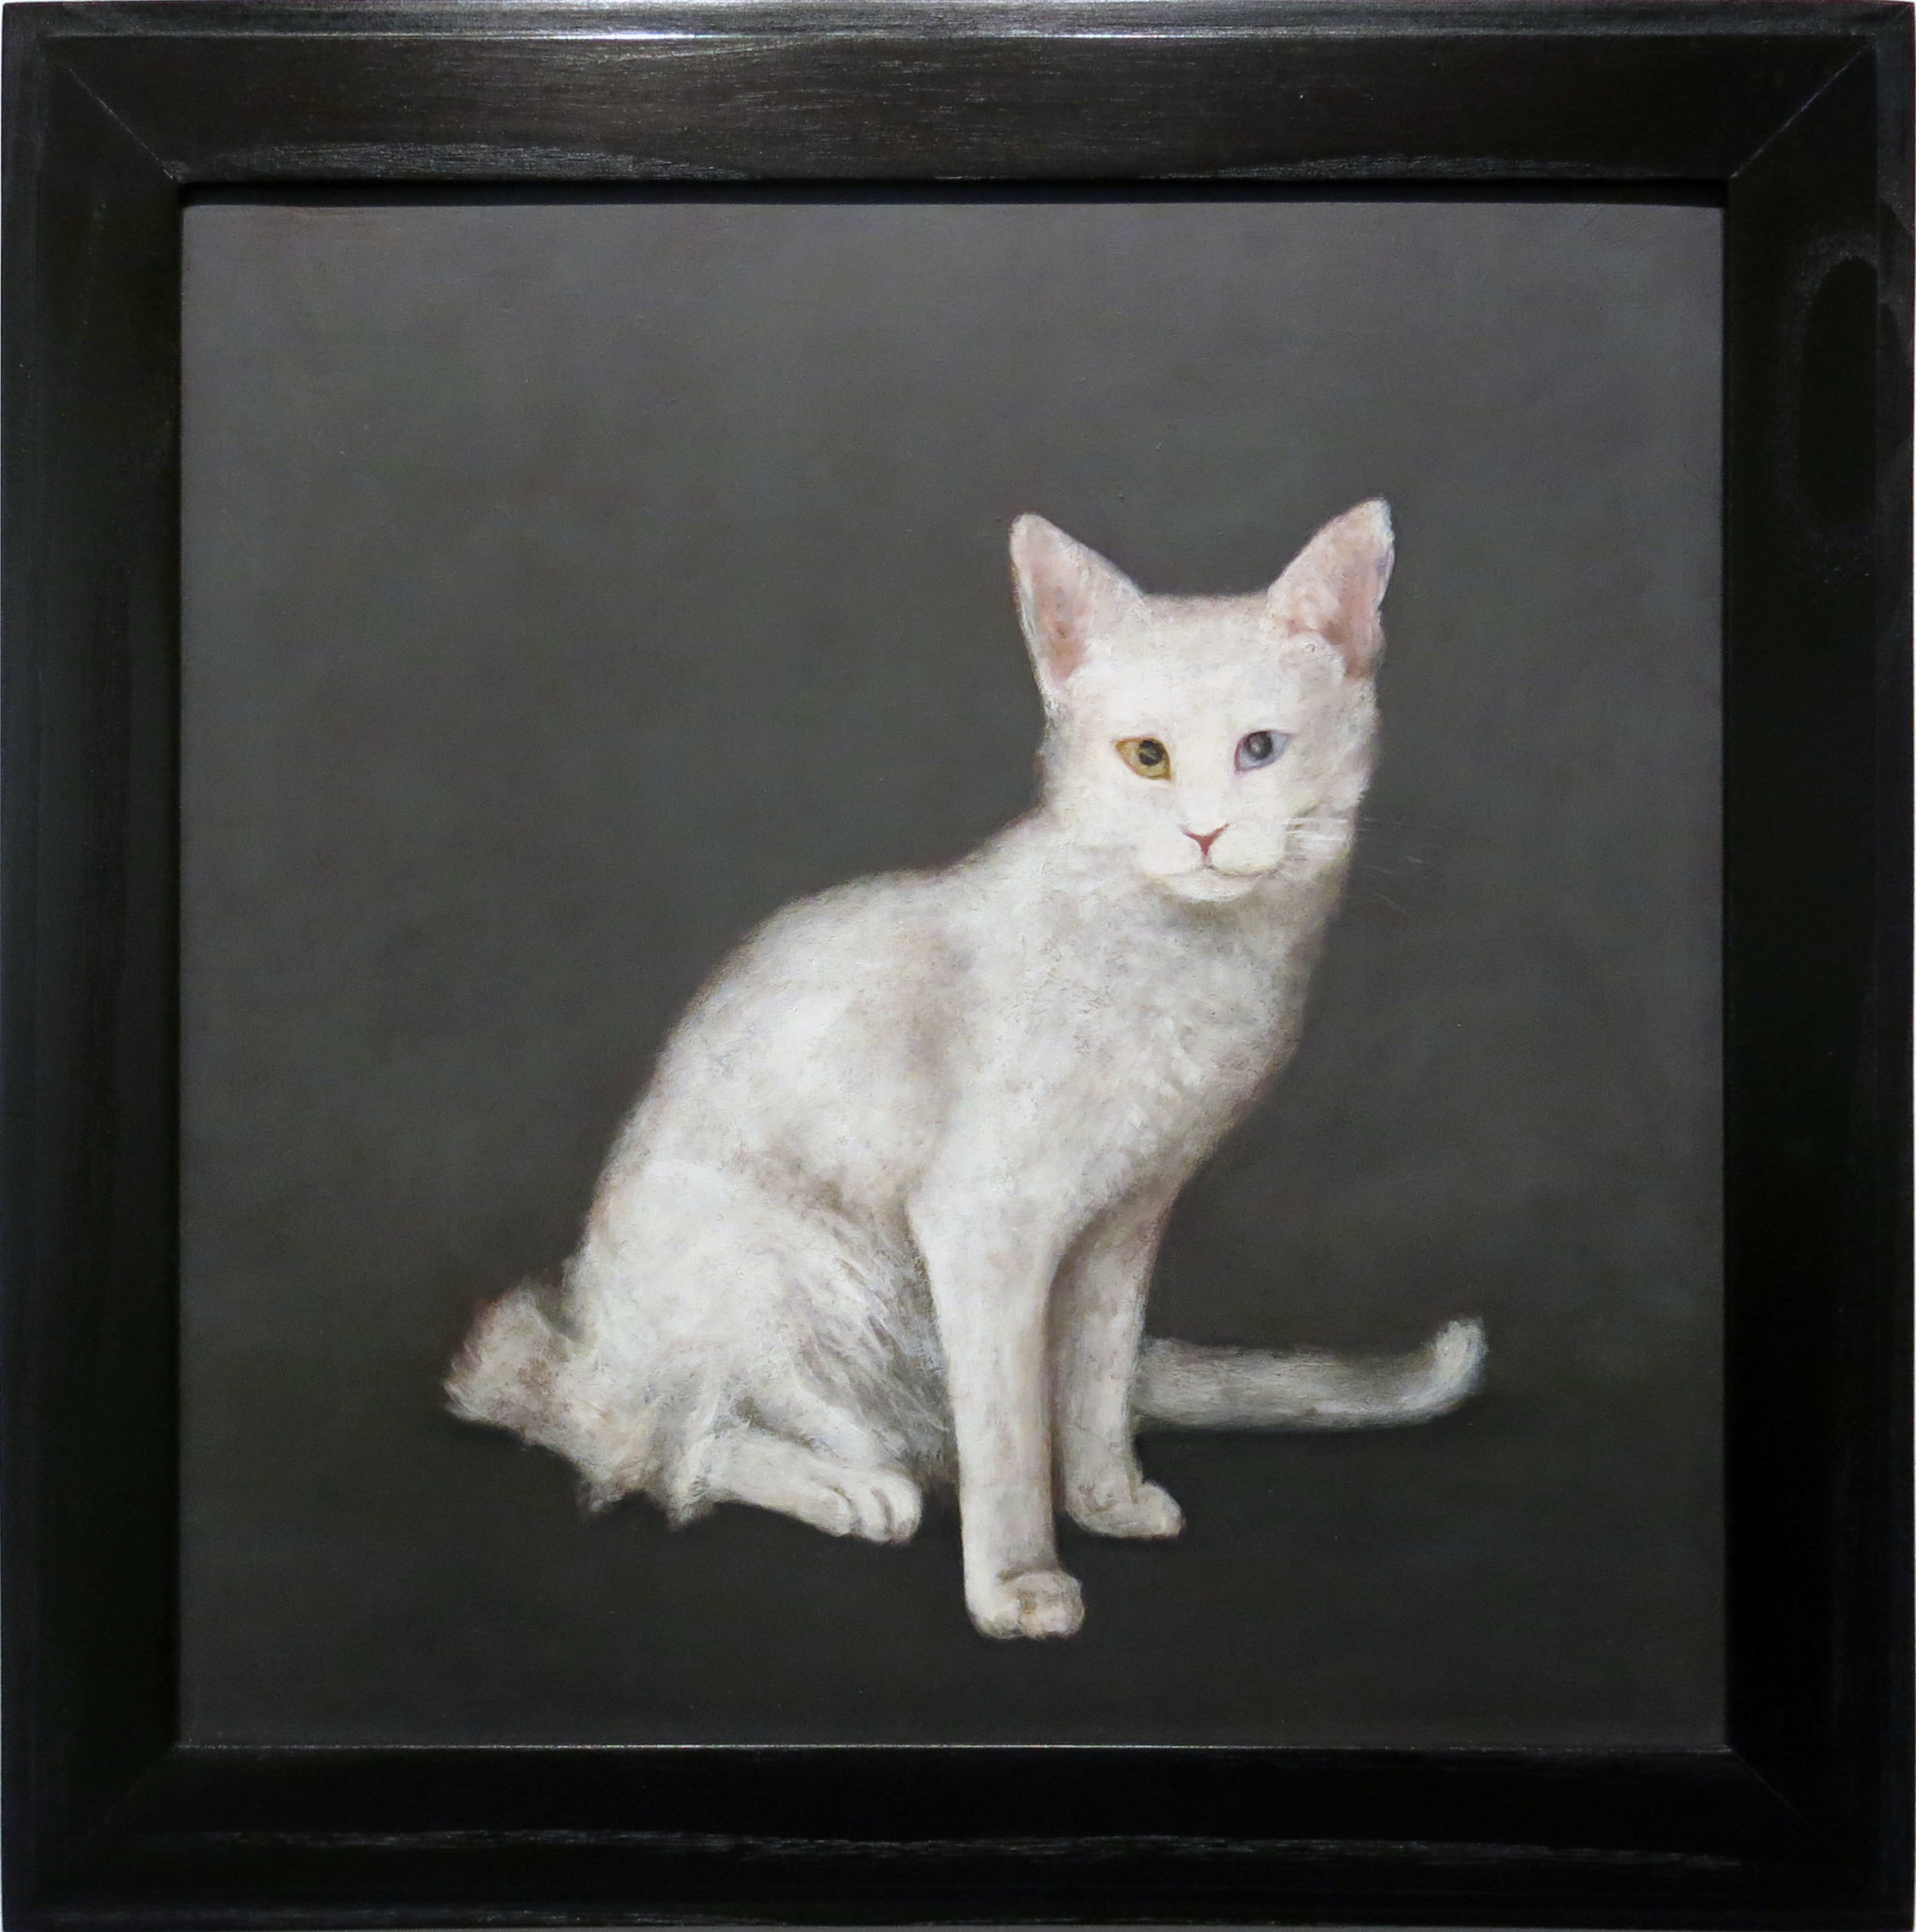 Mary Jo Vath,  Deaf Cat,  1987, Oil on masonite, 14.5h x 14.5w in.